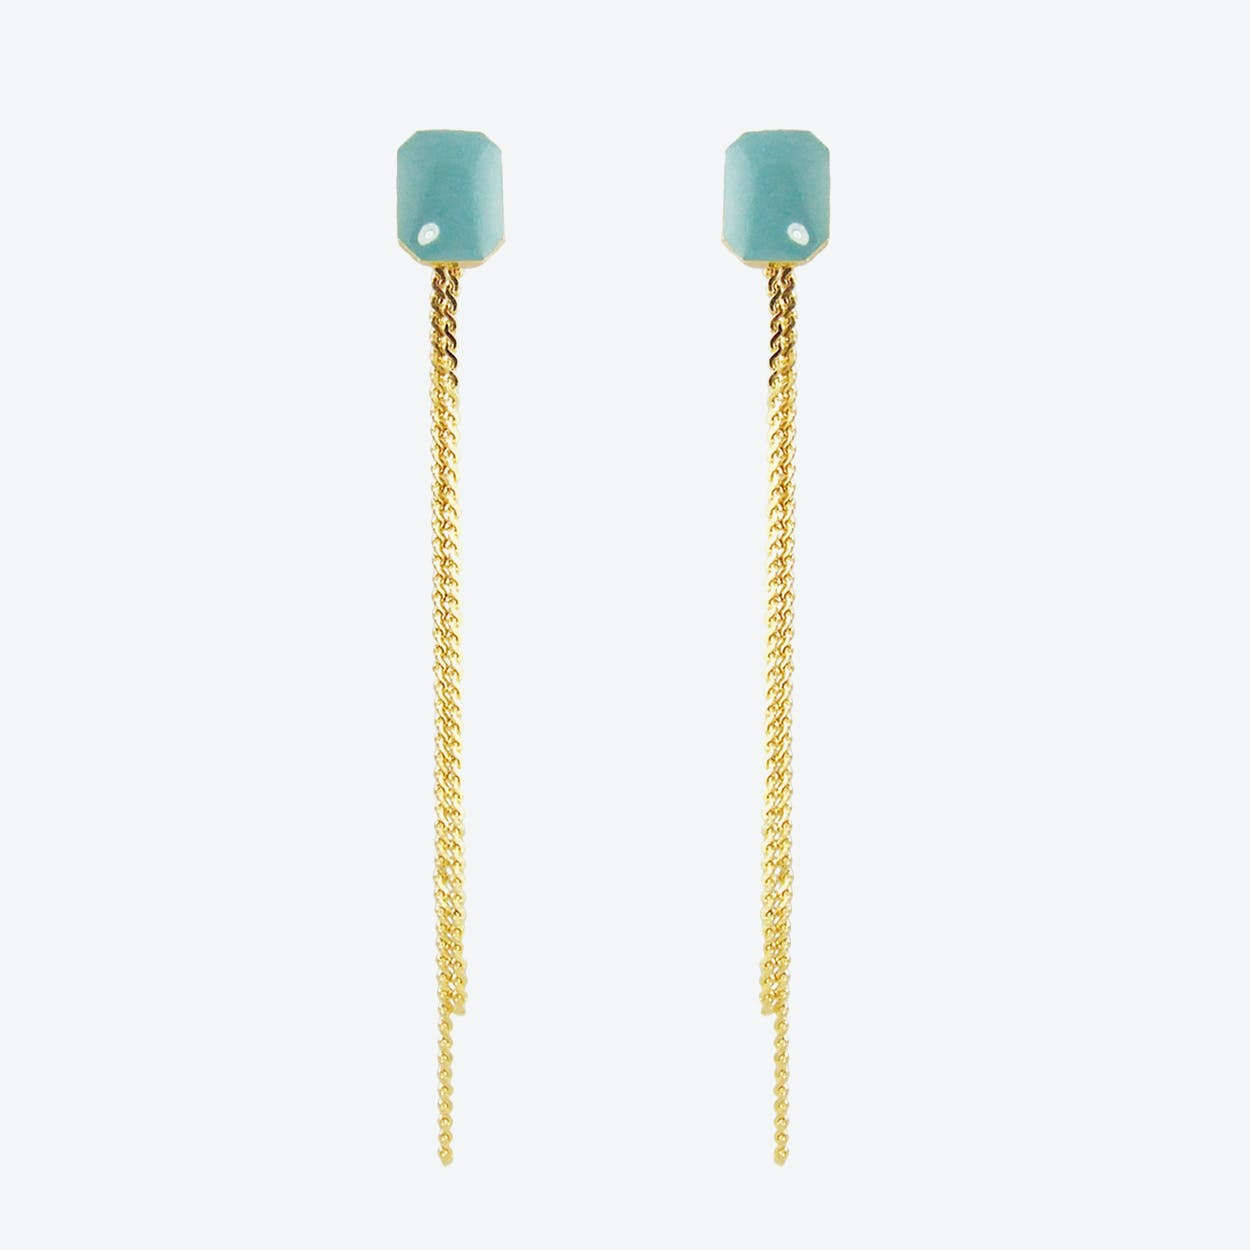 Gold Plated Octagon Stud and Chain Earrings in Duck Egg